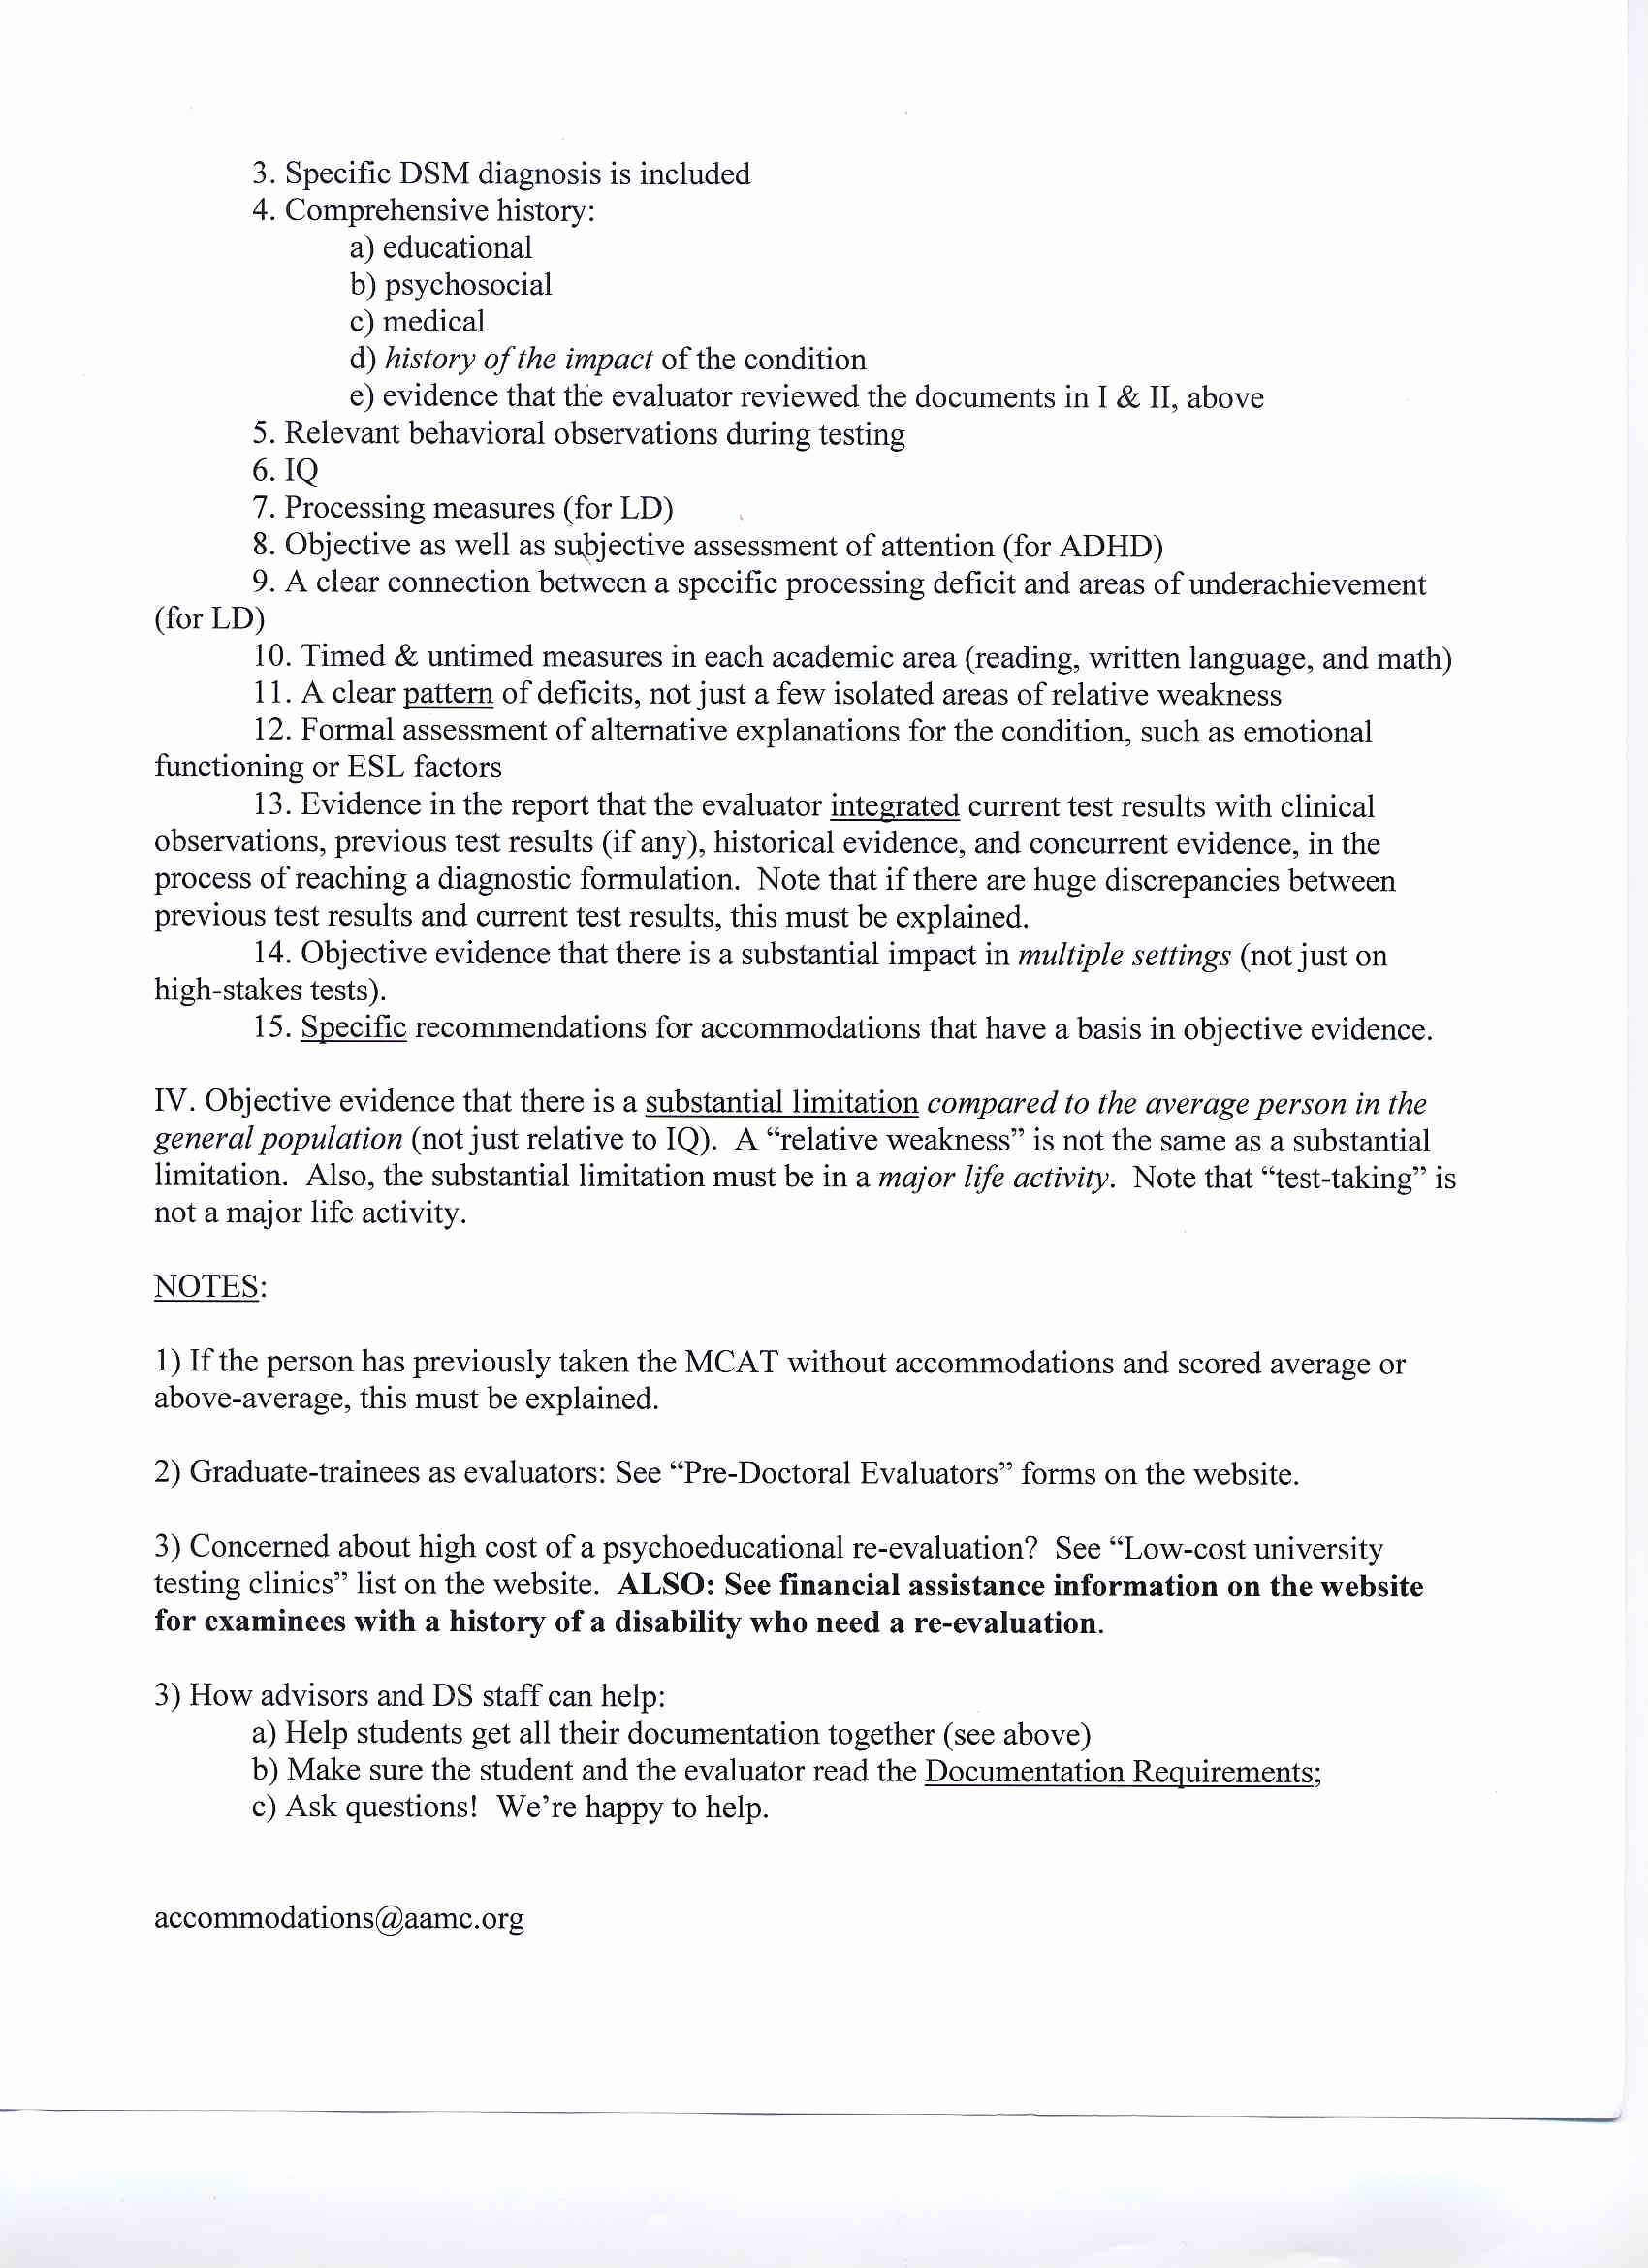 Amcas Letter Of Recommendation Guidelines Beautiful Lewis associates Medical School Advising